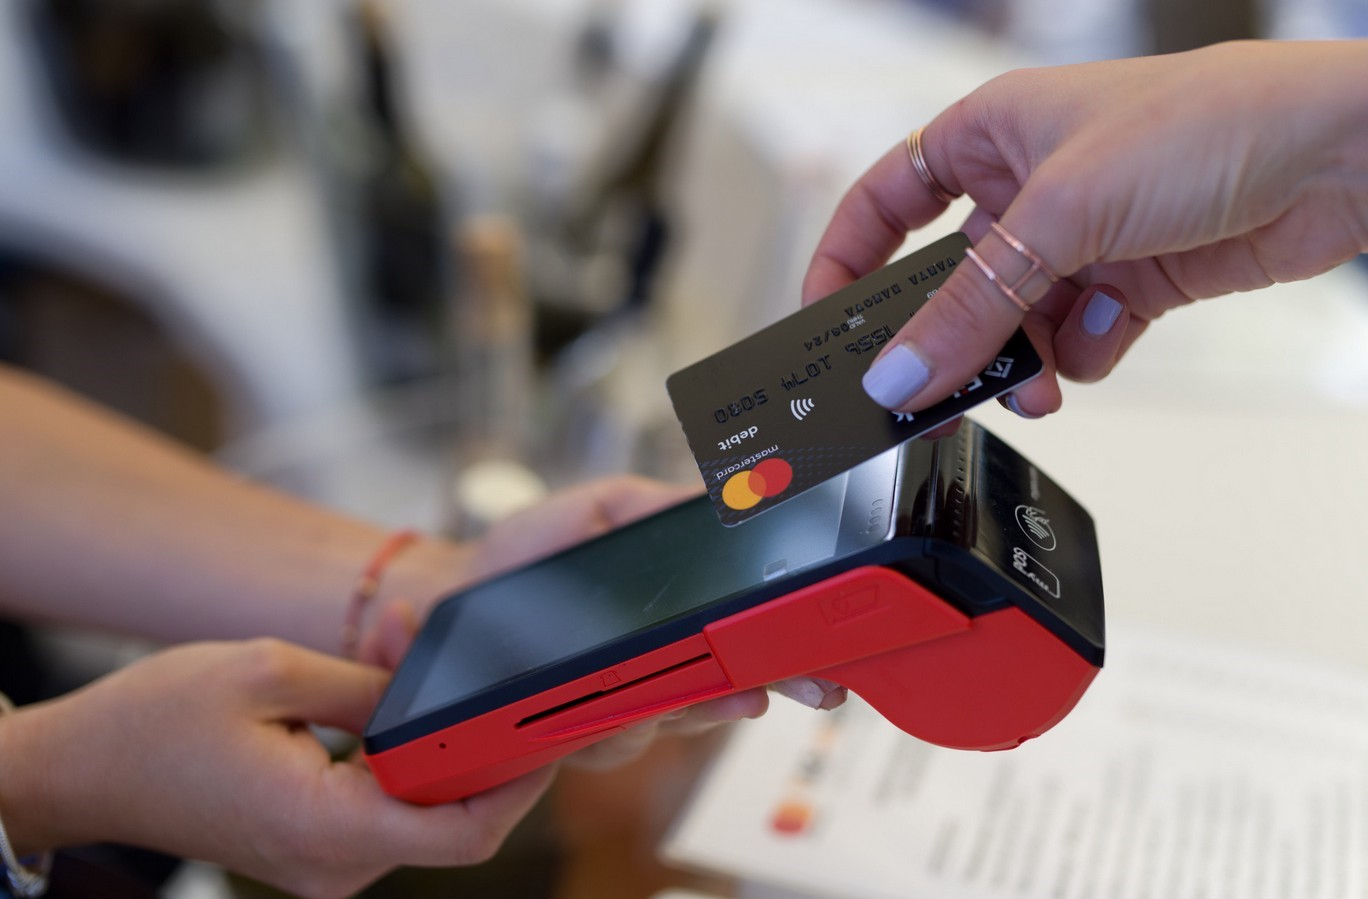 Take payments with a POS device